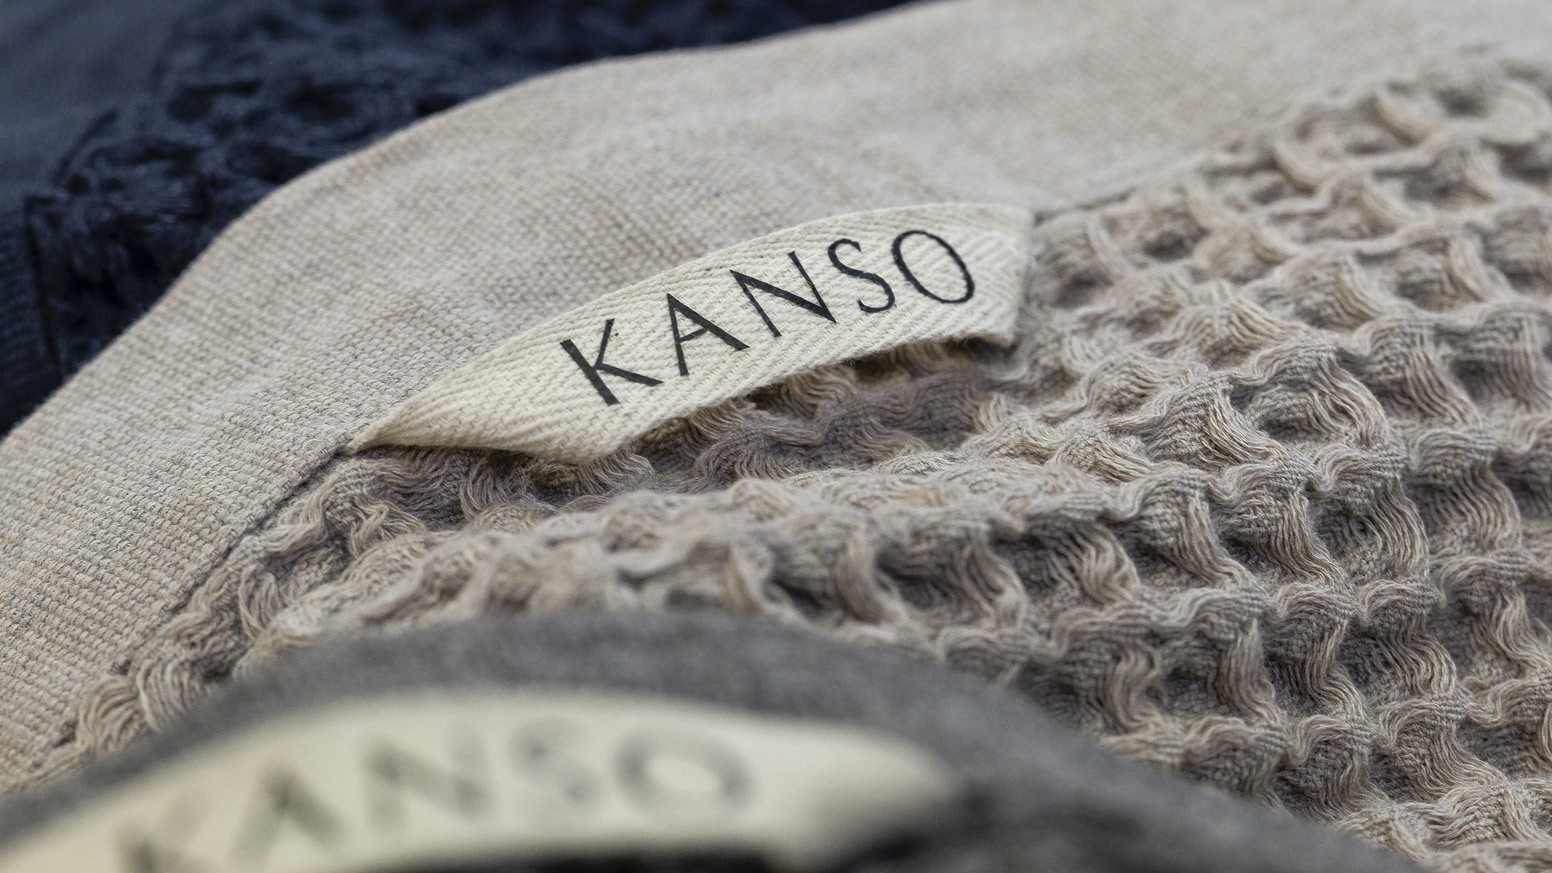 Self-cleaning, fast drying and a stay fresh guarantee; Kanso + Polygiene Stay Fresh technology = the world's most practical towel.